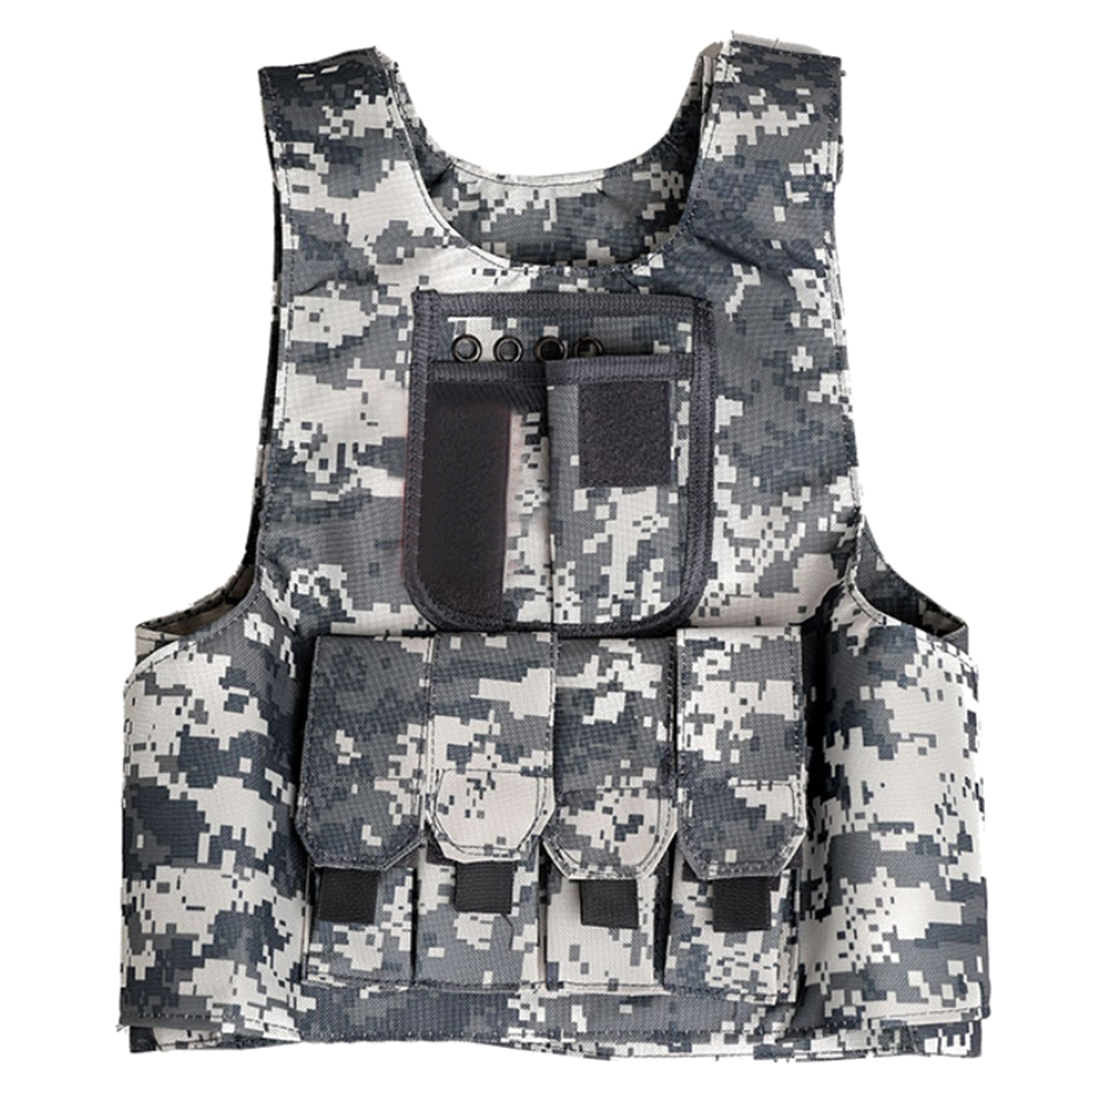 2019 New Arrive Summer Children Level 3 Tactical Vest Outdoor Hunting CS Protective Vest For 12-15 Years Old- Camouflage S